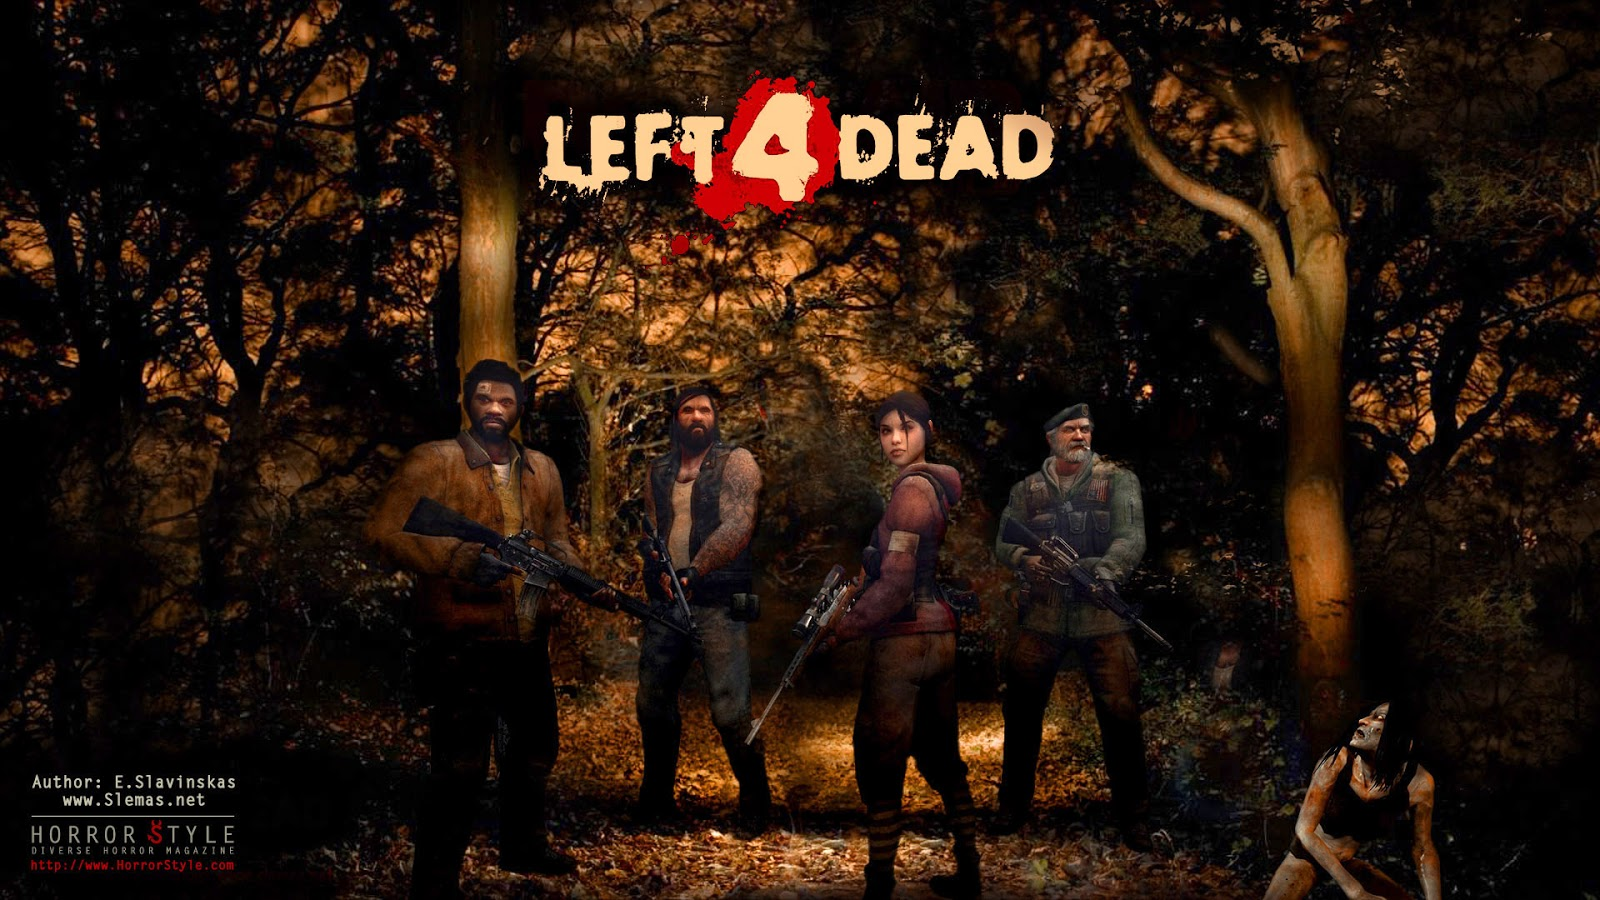 Left 4 Dead 2 will be free